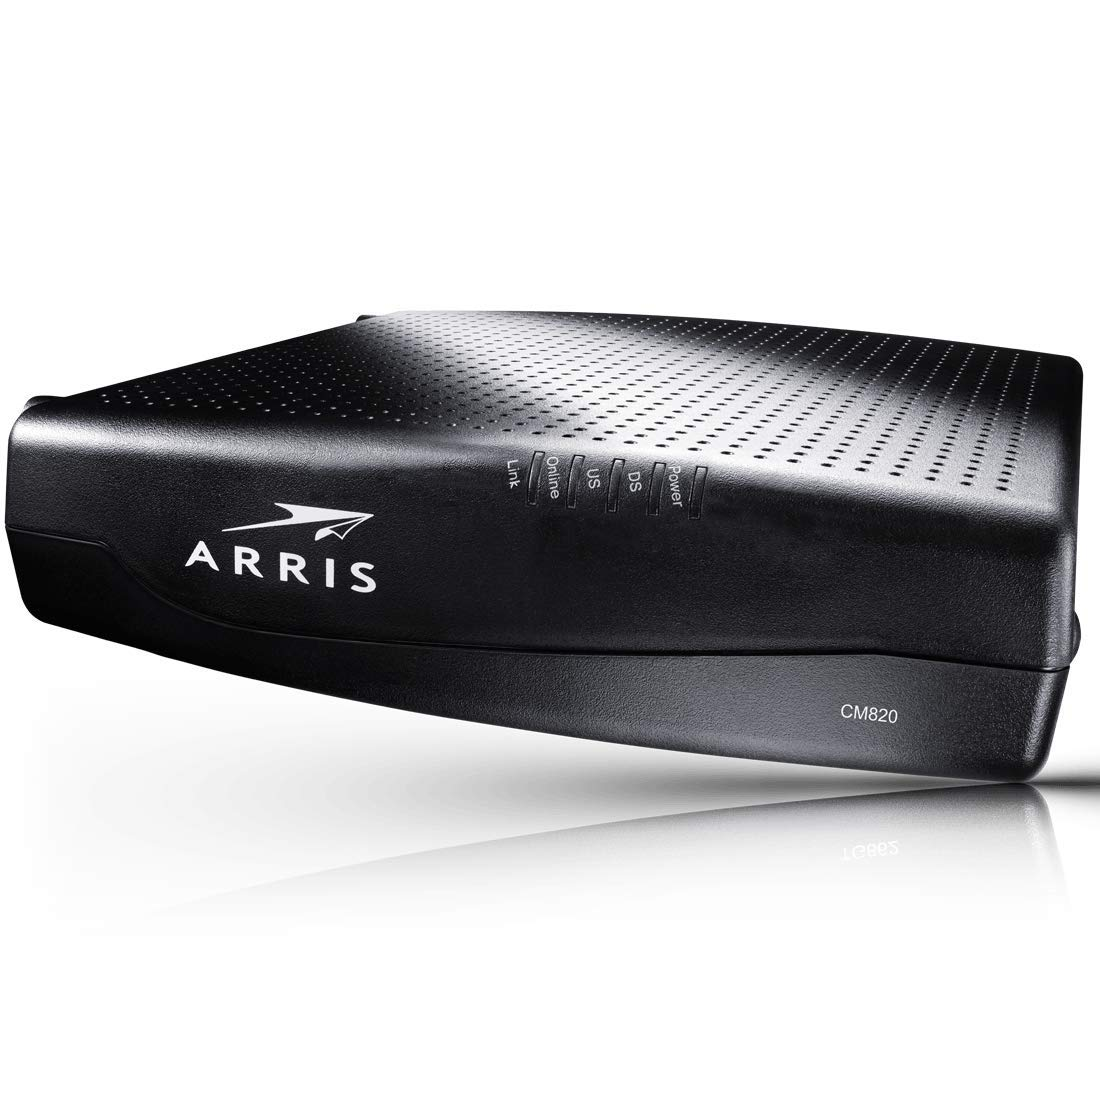 ARRIS CM820A Cable Modem DOCSIS 3.0 300 Mbps (Renewed) by ARRIS